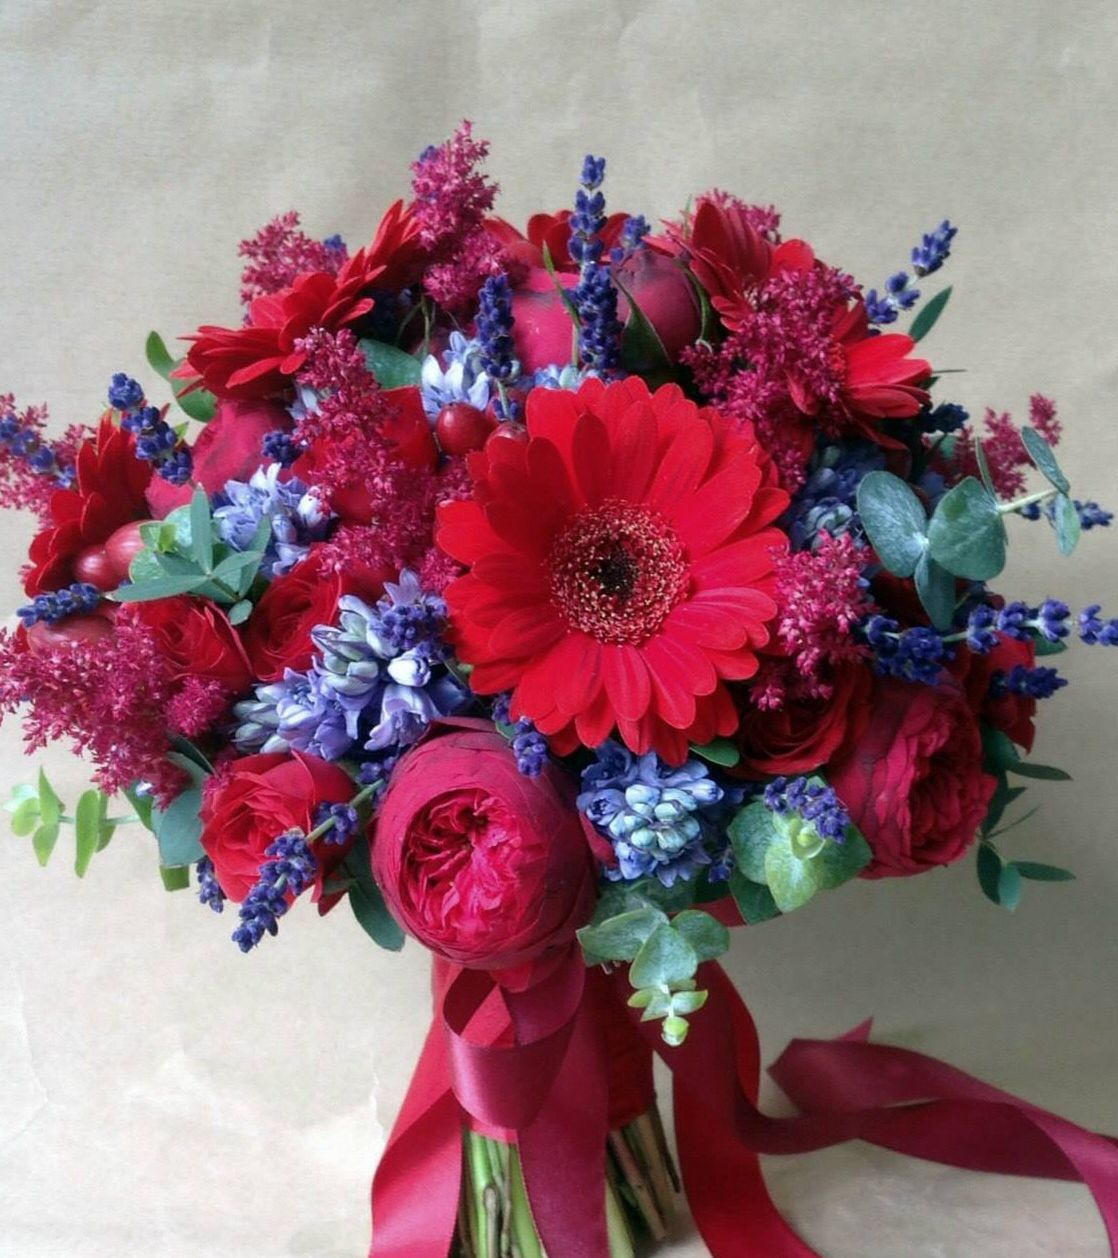 Swindon Florist Can Offer Advice On The Perfect Bouquet To